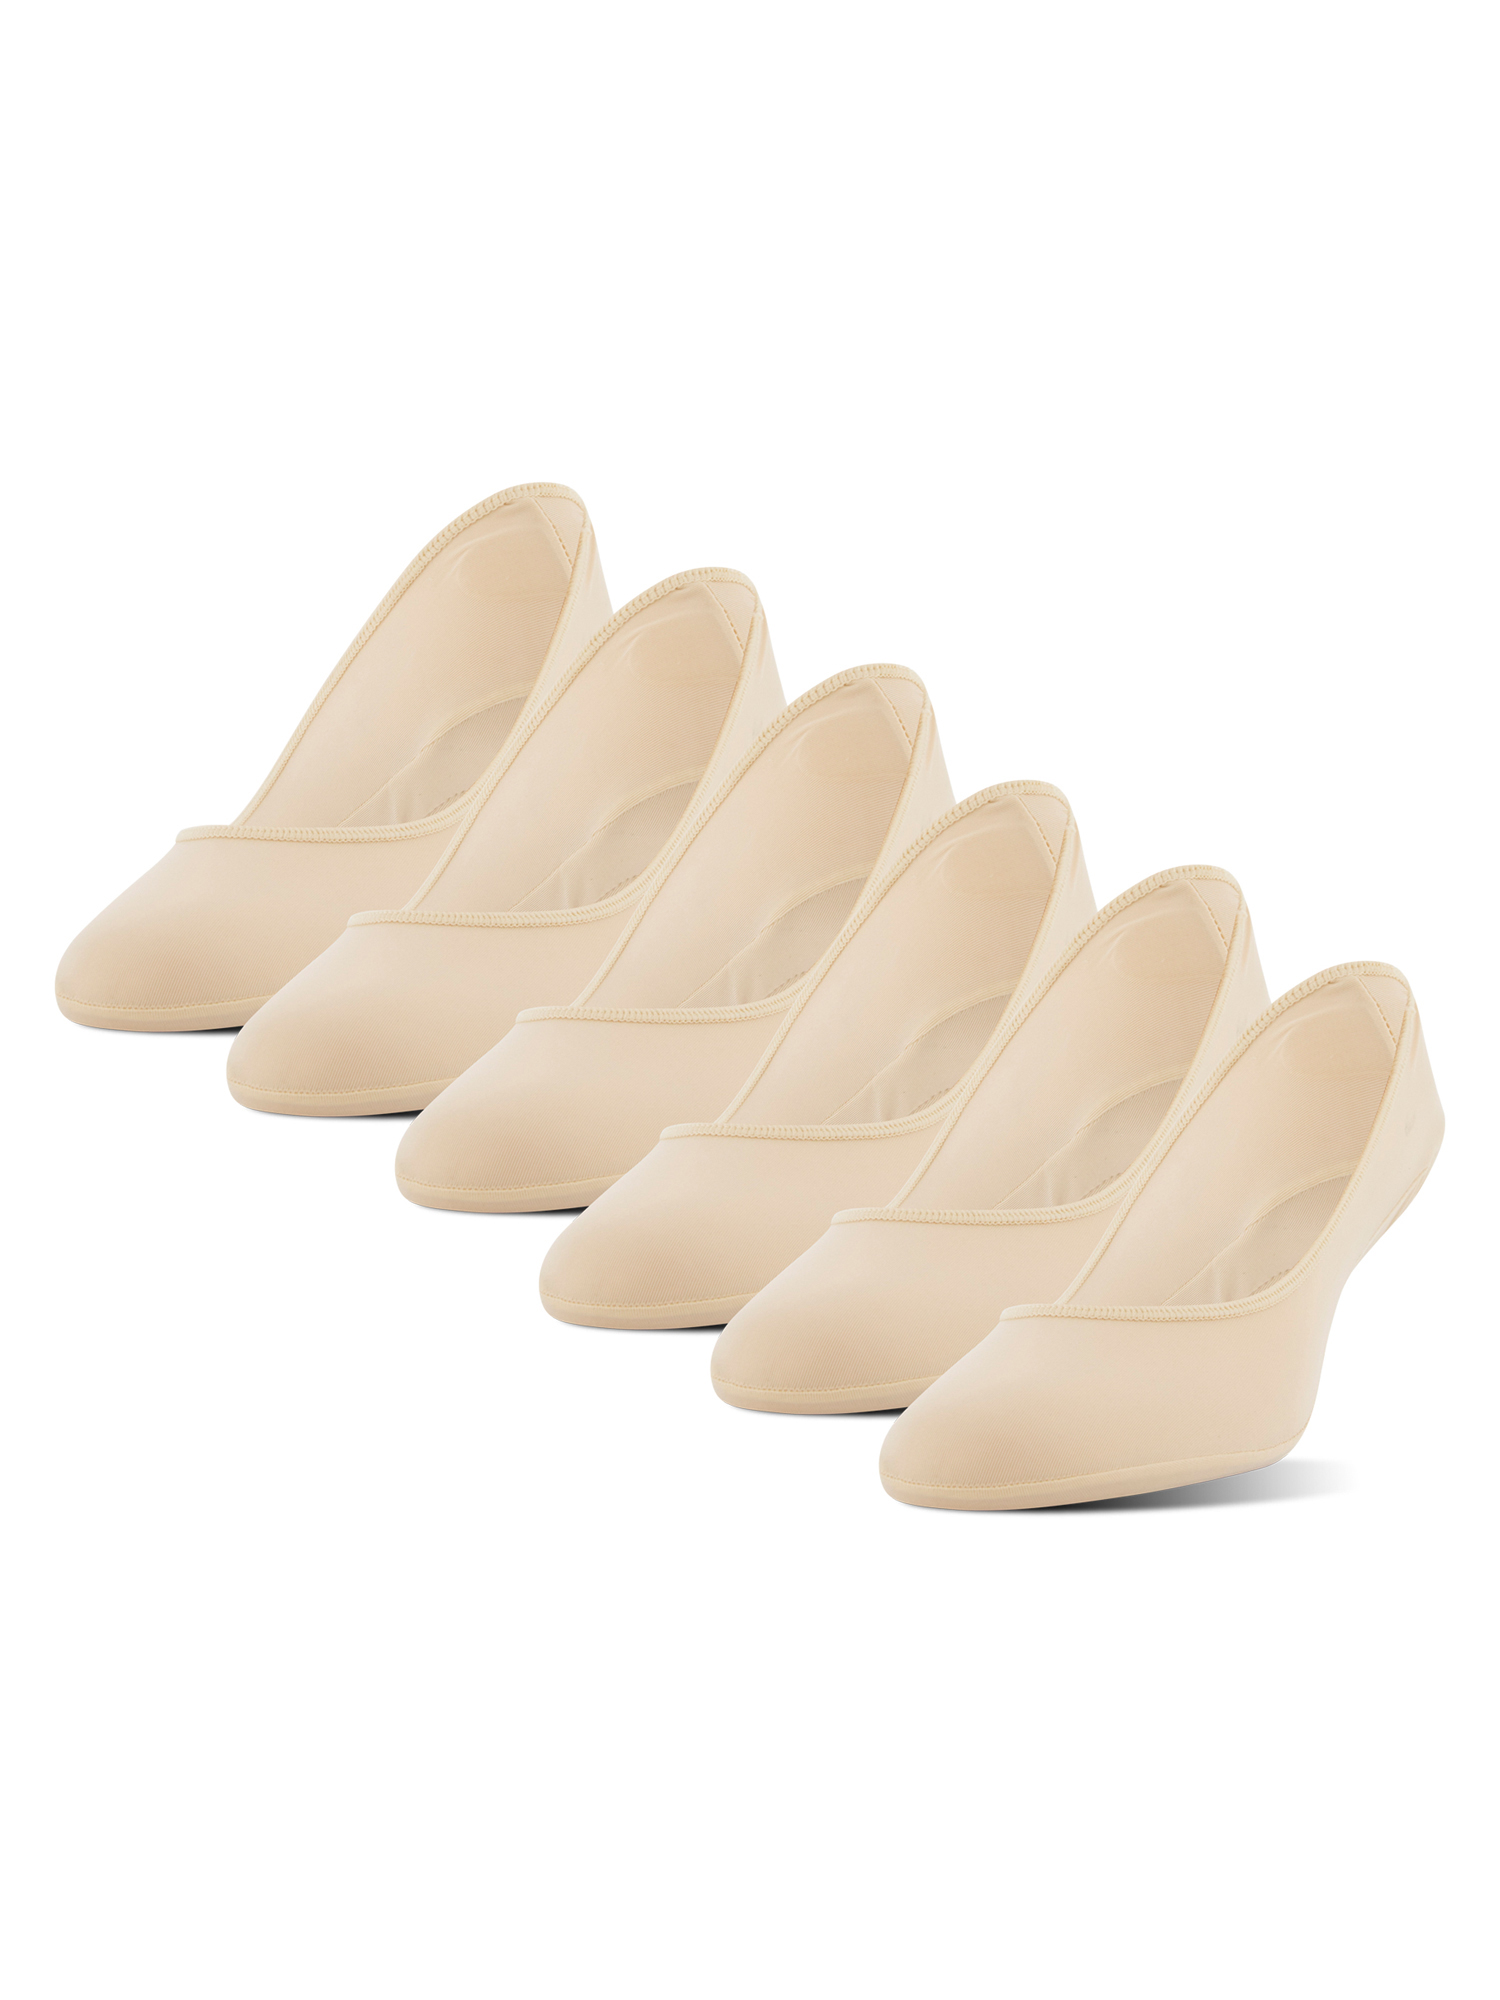 Women's Ultra Low Cut Contoured Pad Liner with Gel Tab, 6 Pairs